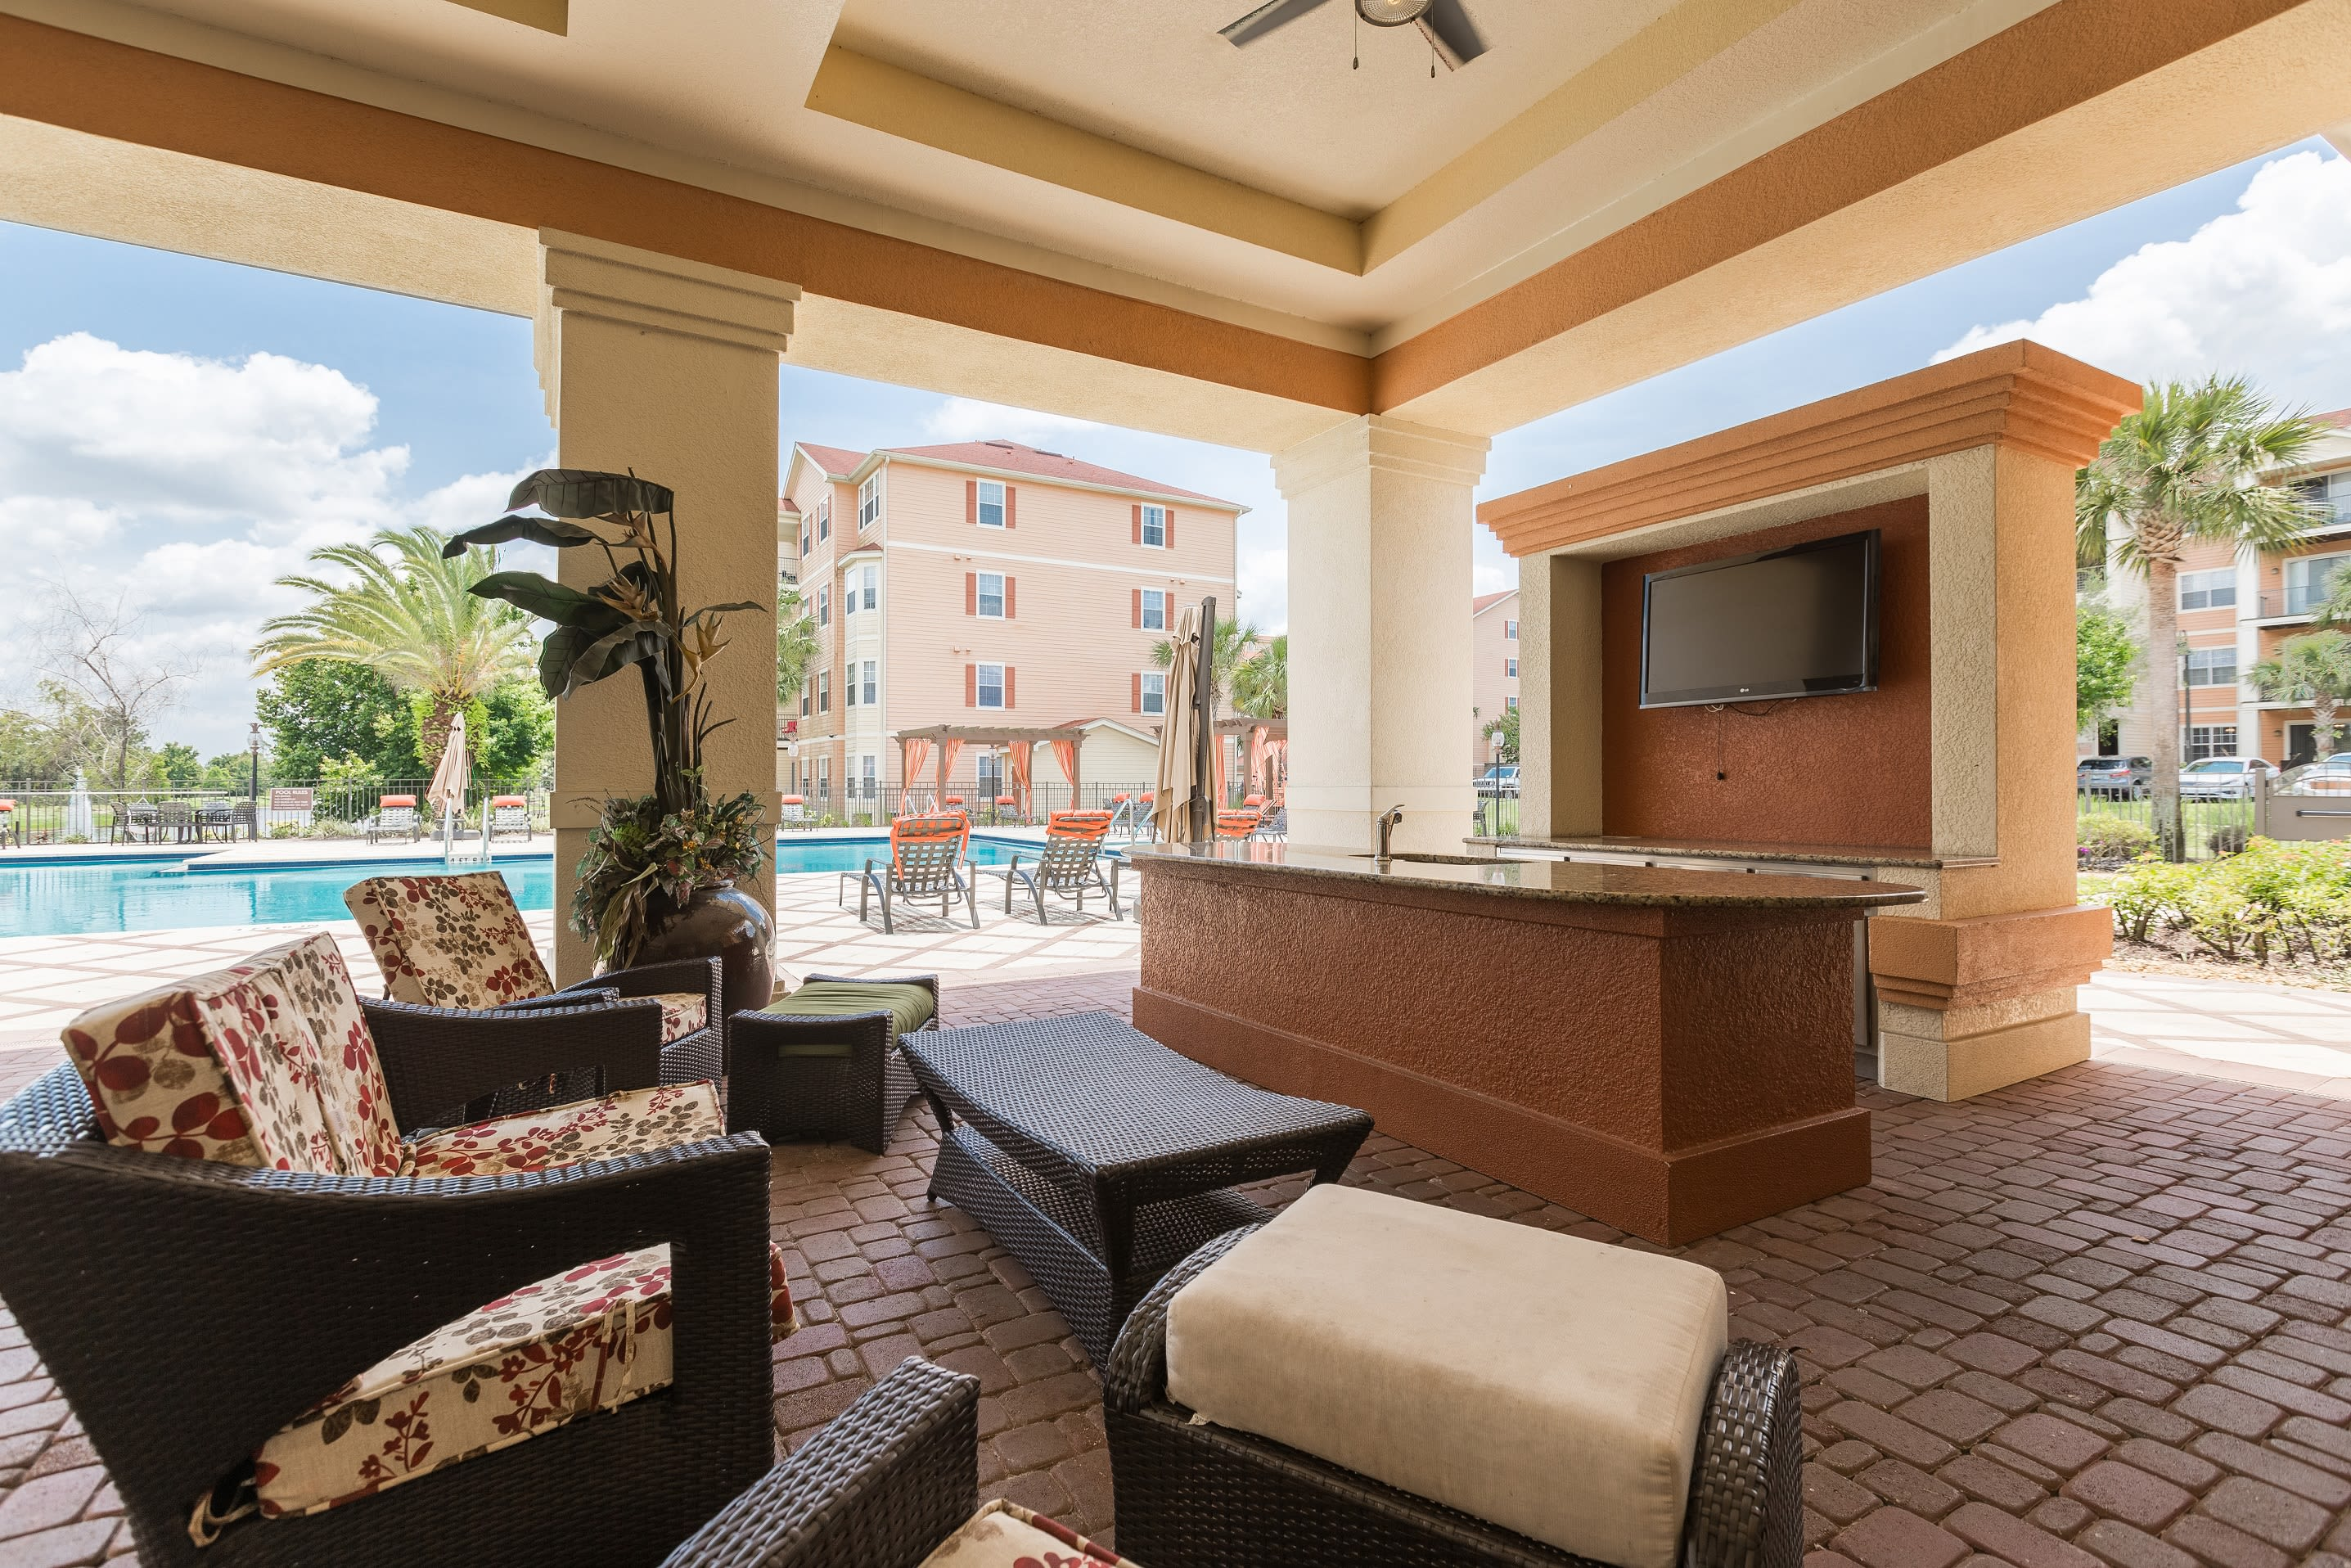 Common area next to the swimming pool at The Aspect in Kissimmee, Florida